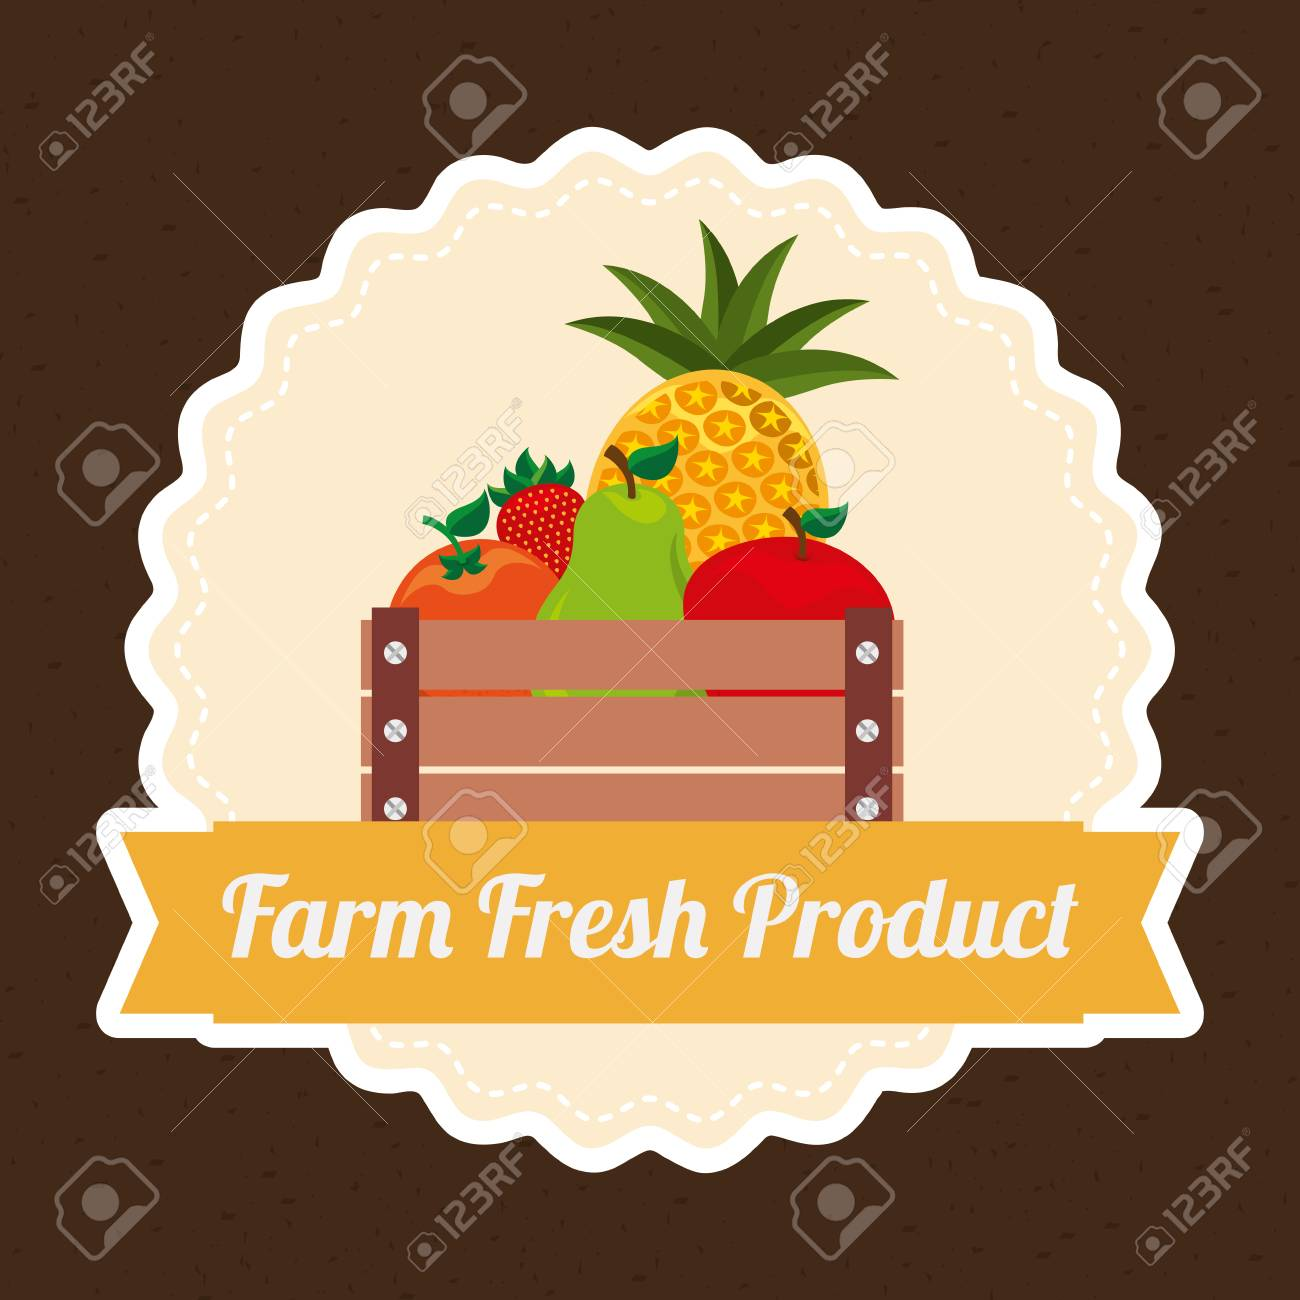 Awe Inspiring Farm Concept Design Vector Illustration Eps10 Graphic Royalty Funny Birthday Cards Online Inifodamsfinfo